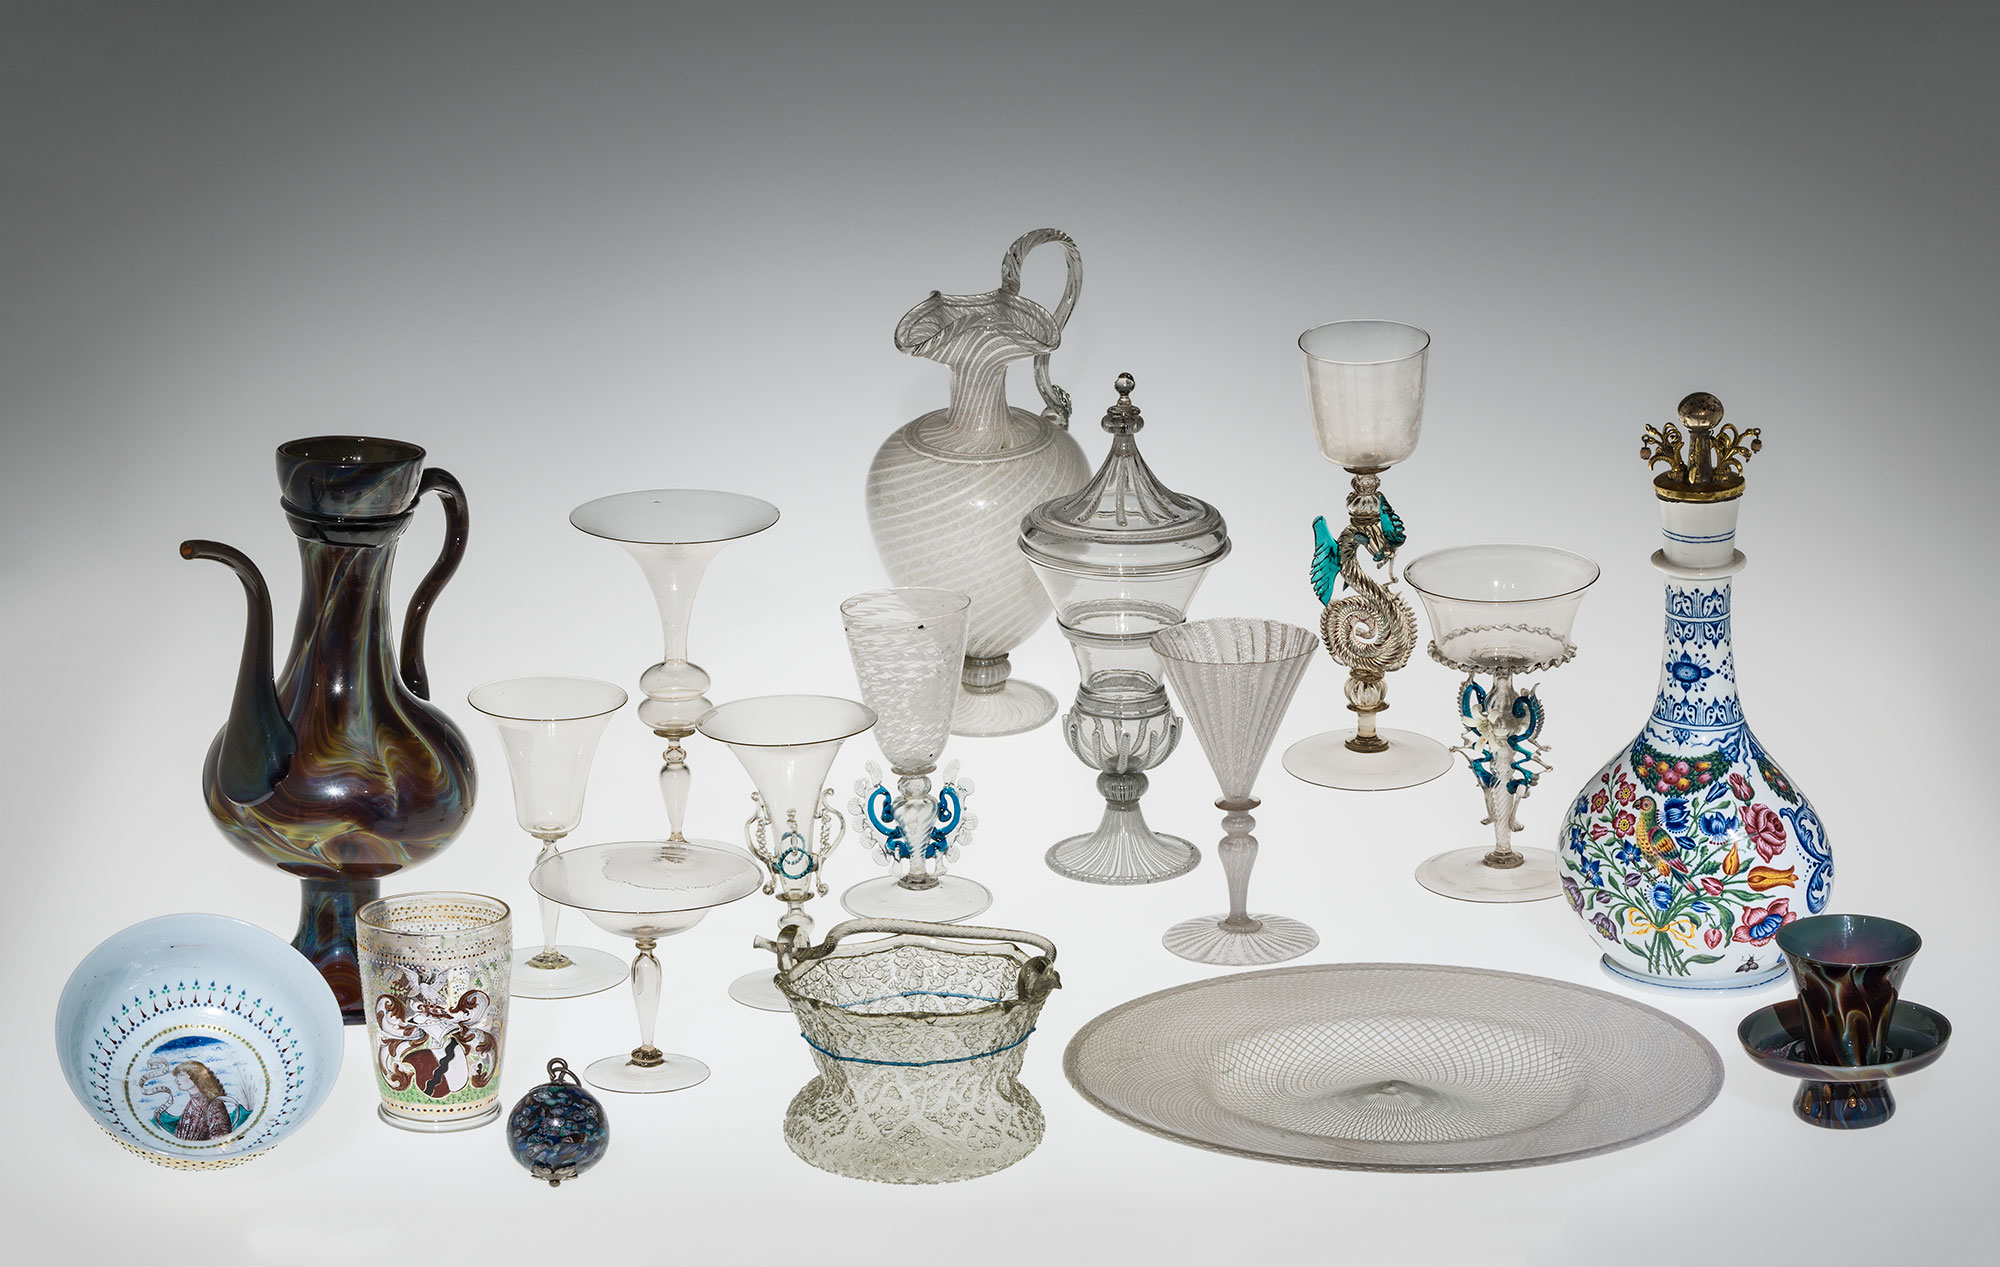 18 Venetian glass objects including goblets, beakers, tankards, and plates